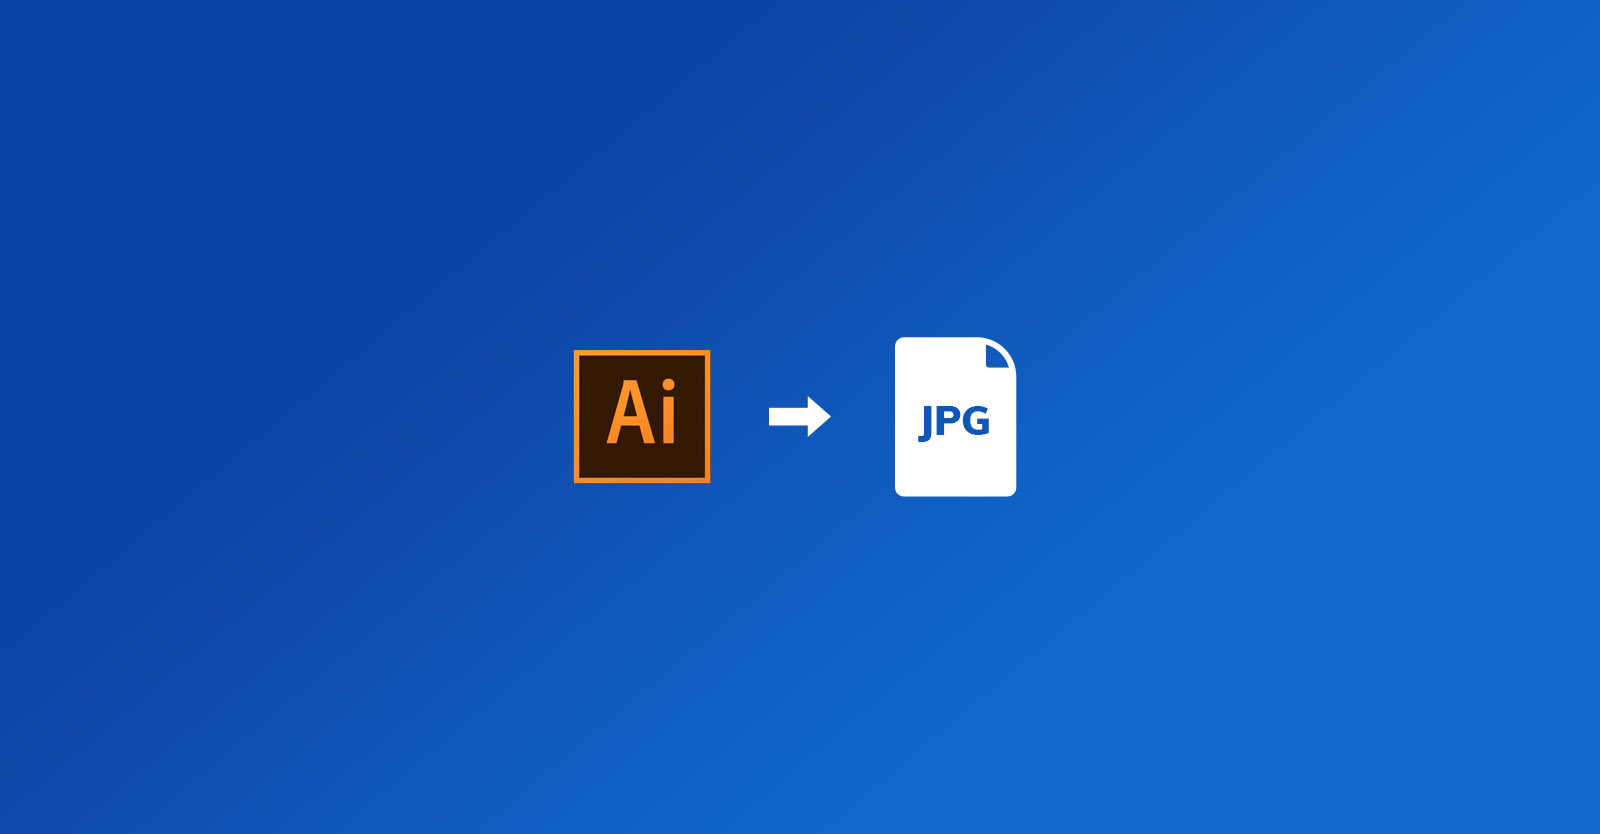 How to export a JPG file from Illustrator